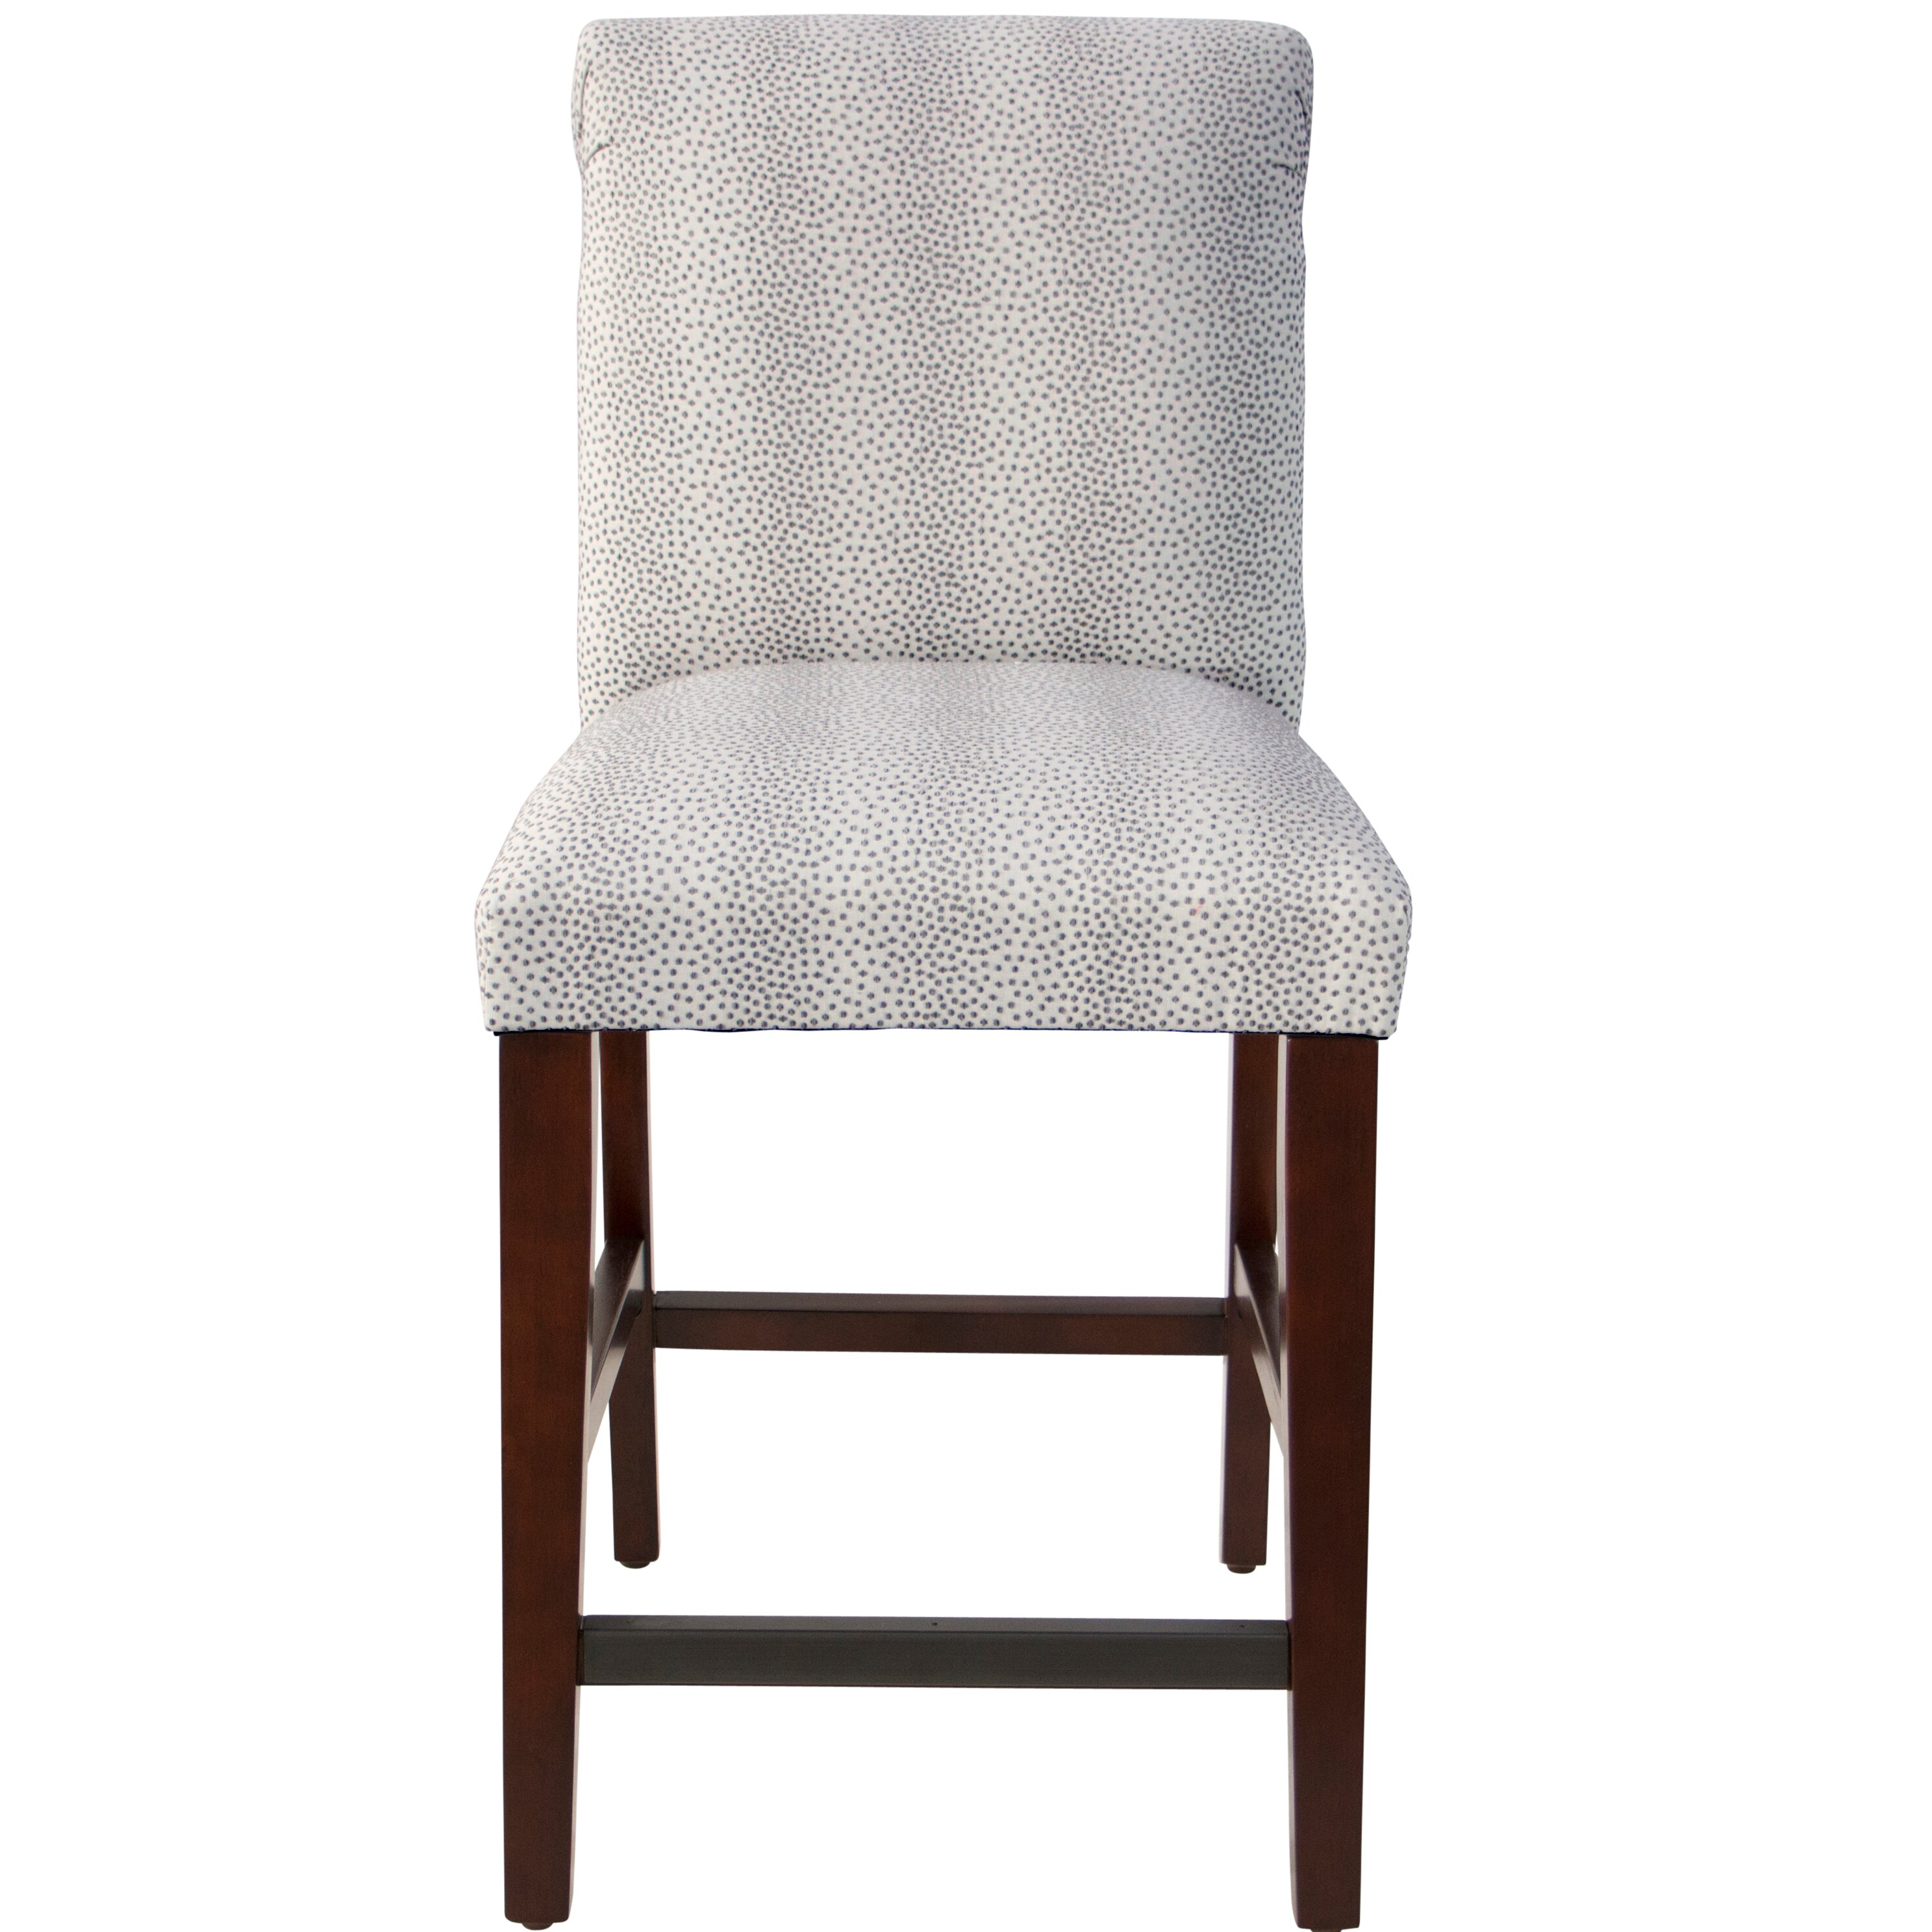 Darby Home Co Cynthia Faux Fur Upholstered Bar Stool Wayfair